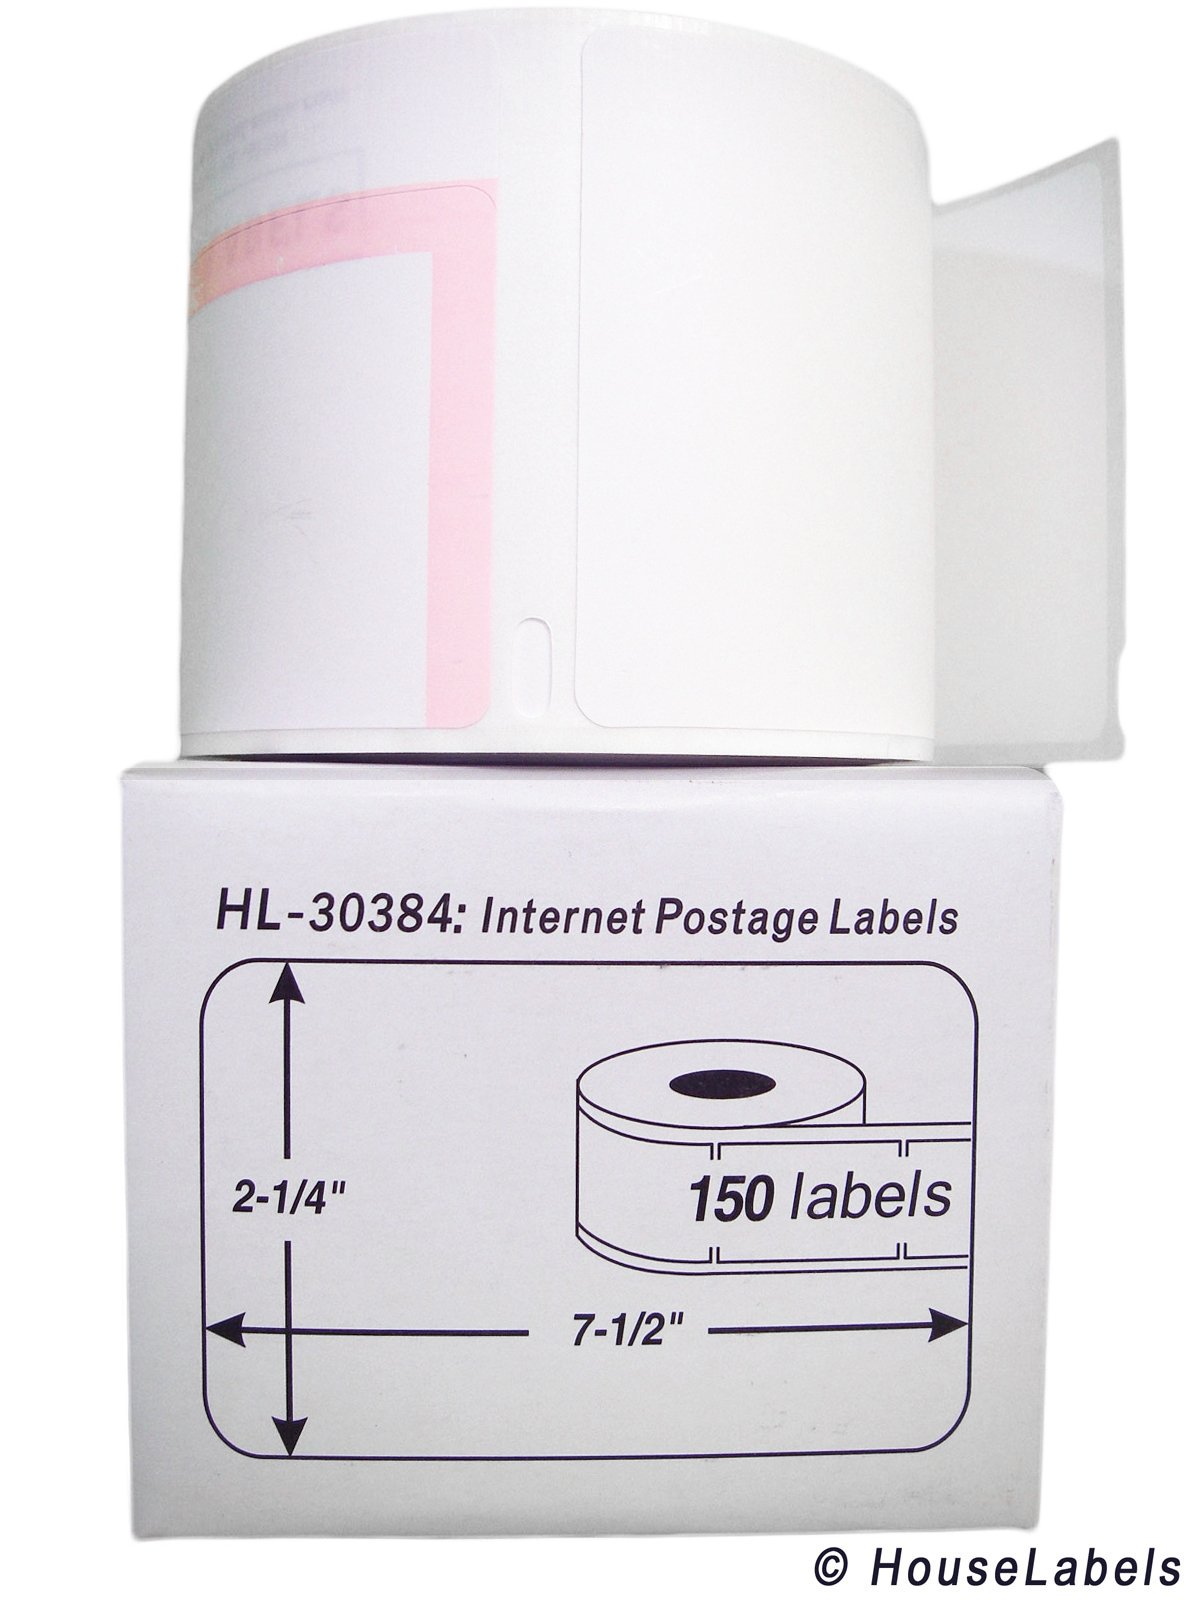 4 Rolls; 150 Labels per Roll of DYMO-Compatible 30384 2-Part Internet Postage Labels (2-1/4'' x 7-1/2'') -- BPA Free!